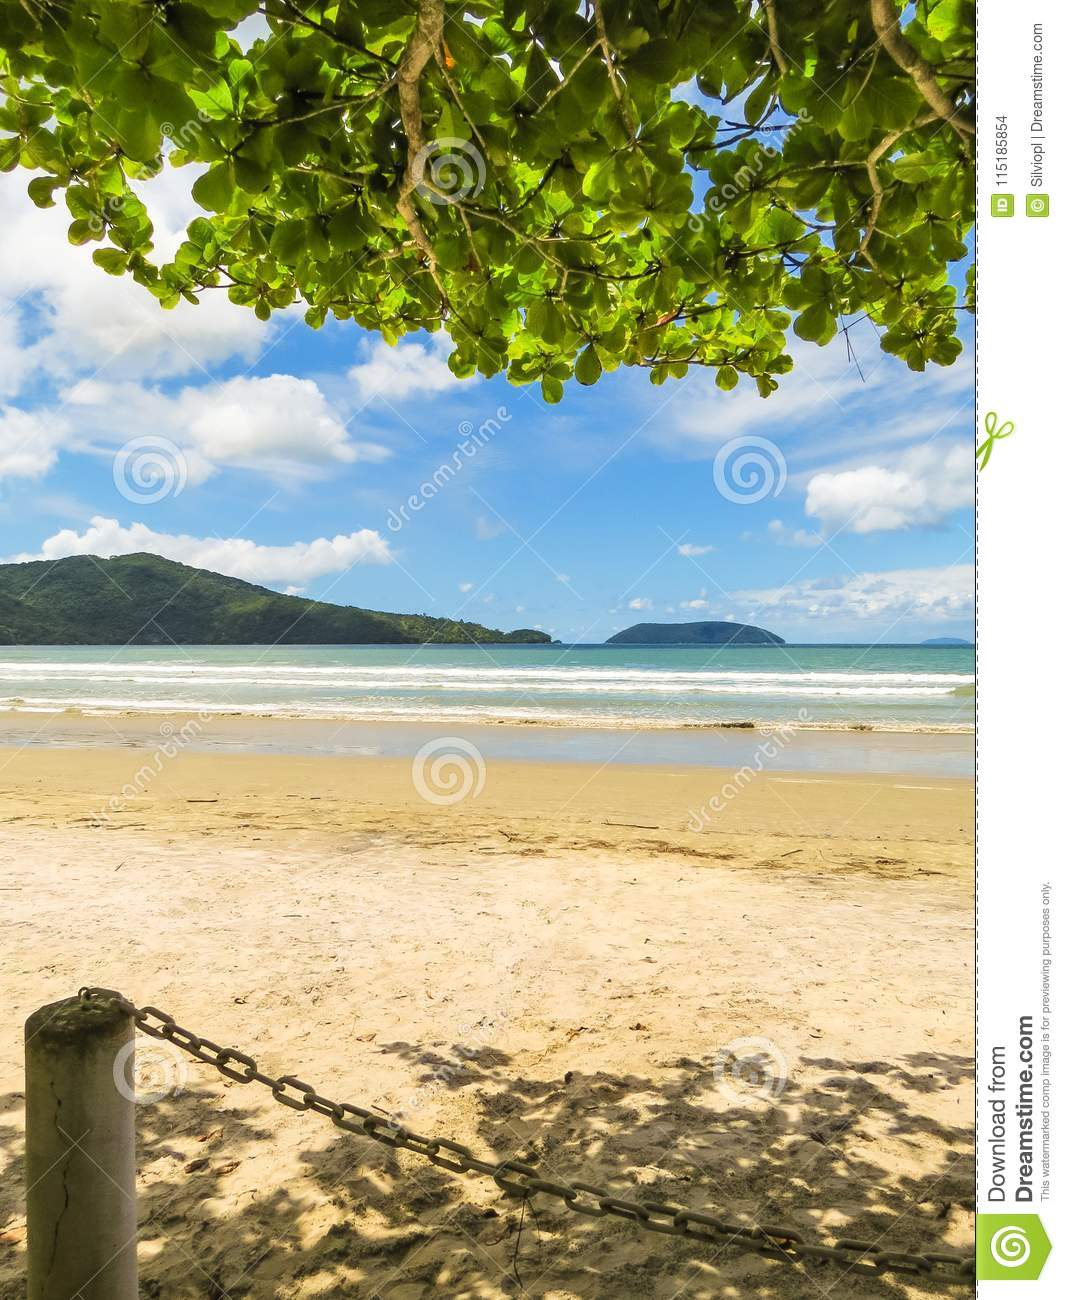 Deserted Island Beach: Landscape Of Deserted Beach With Island In The Background